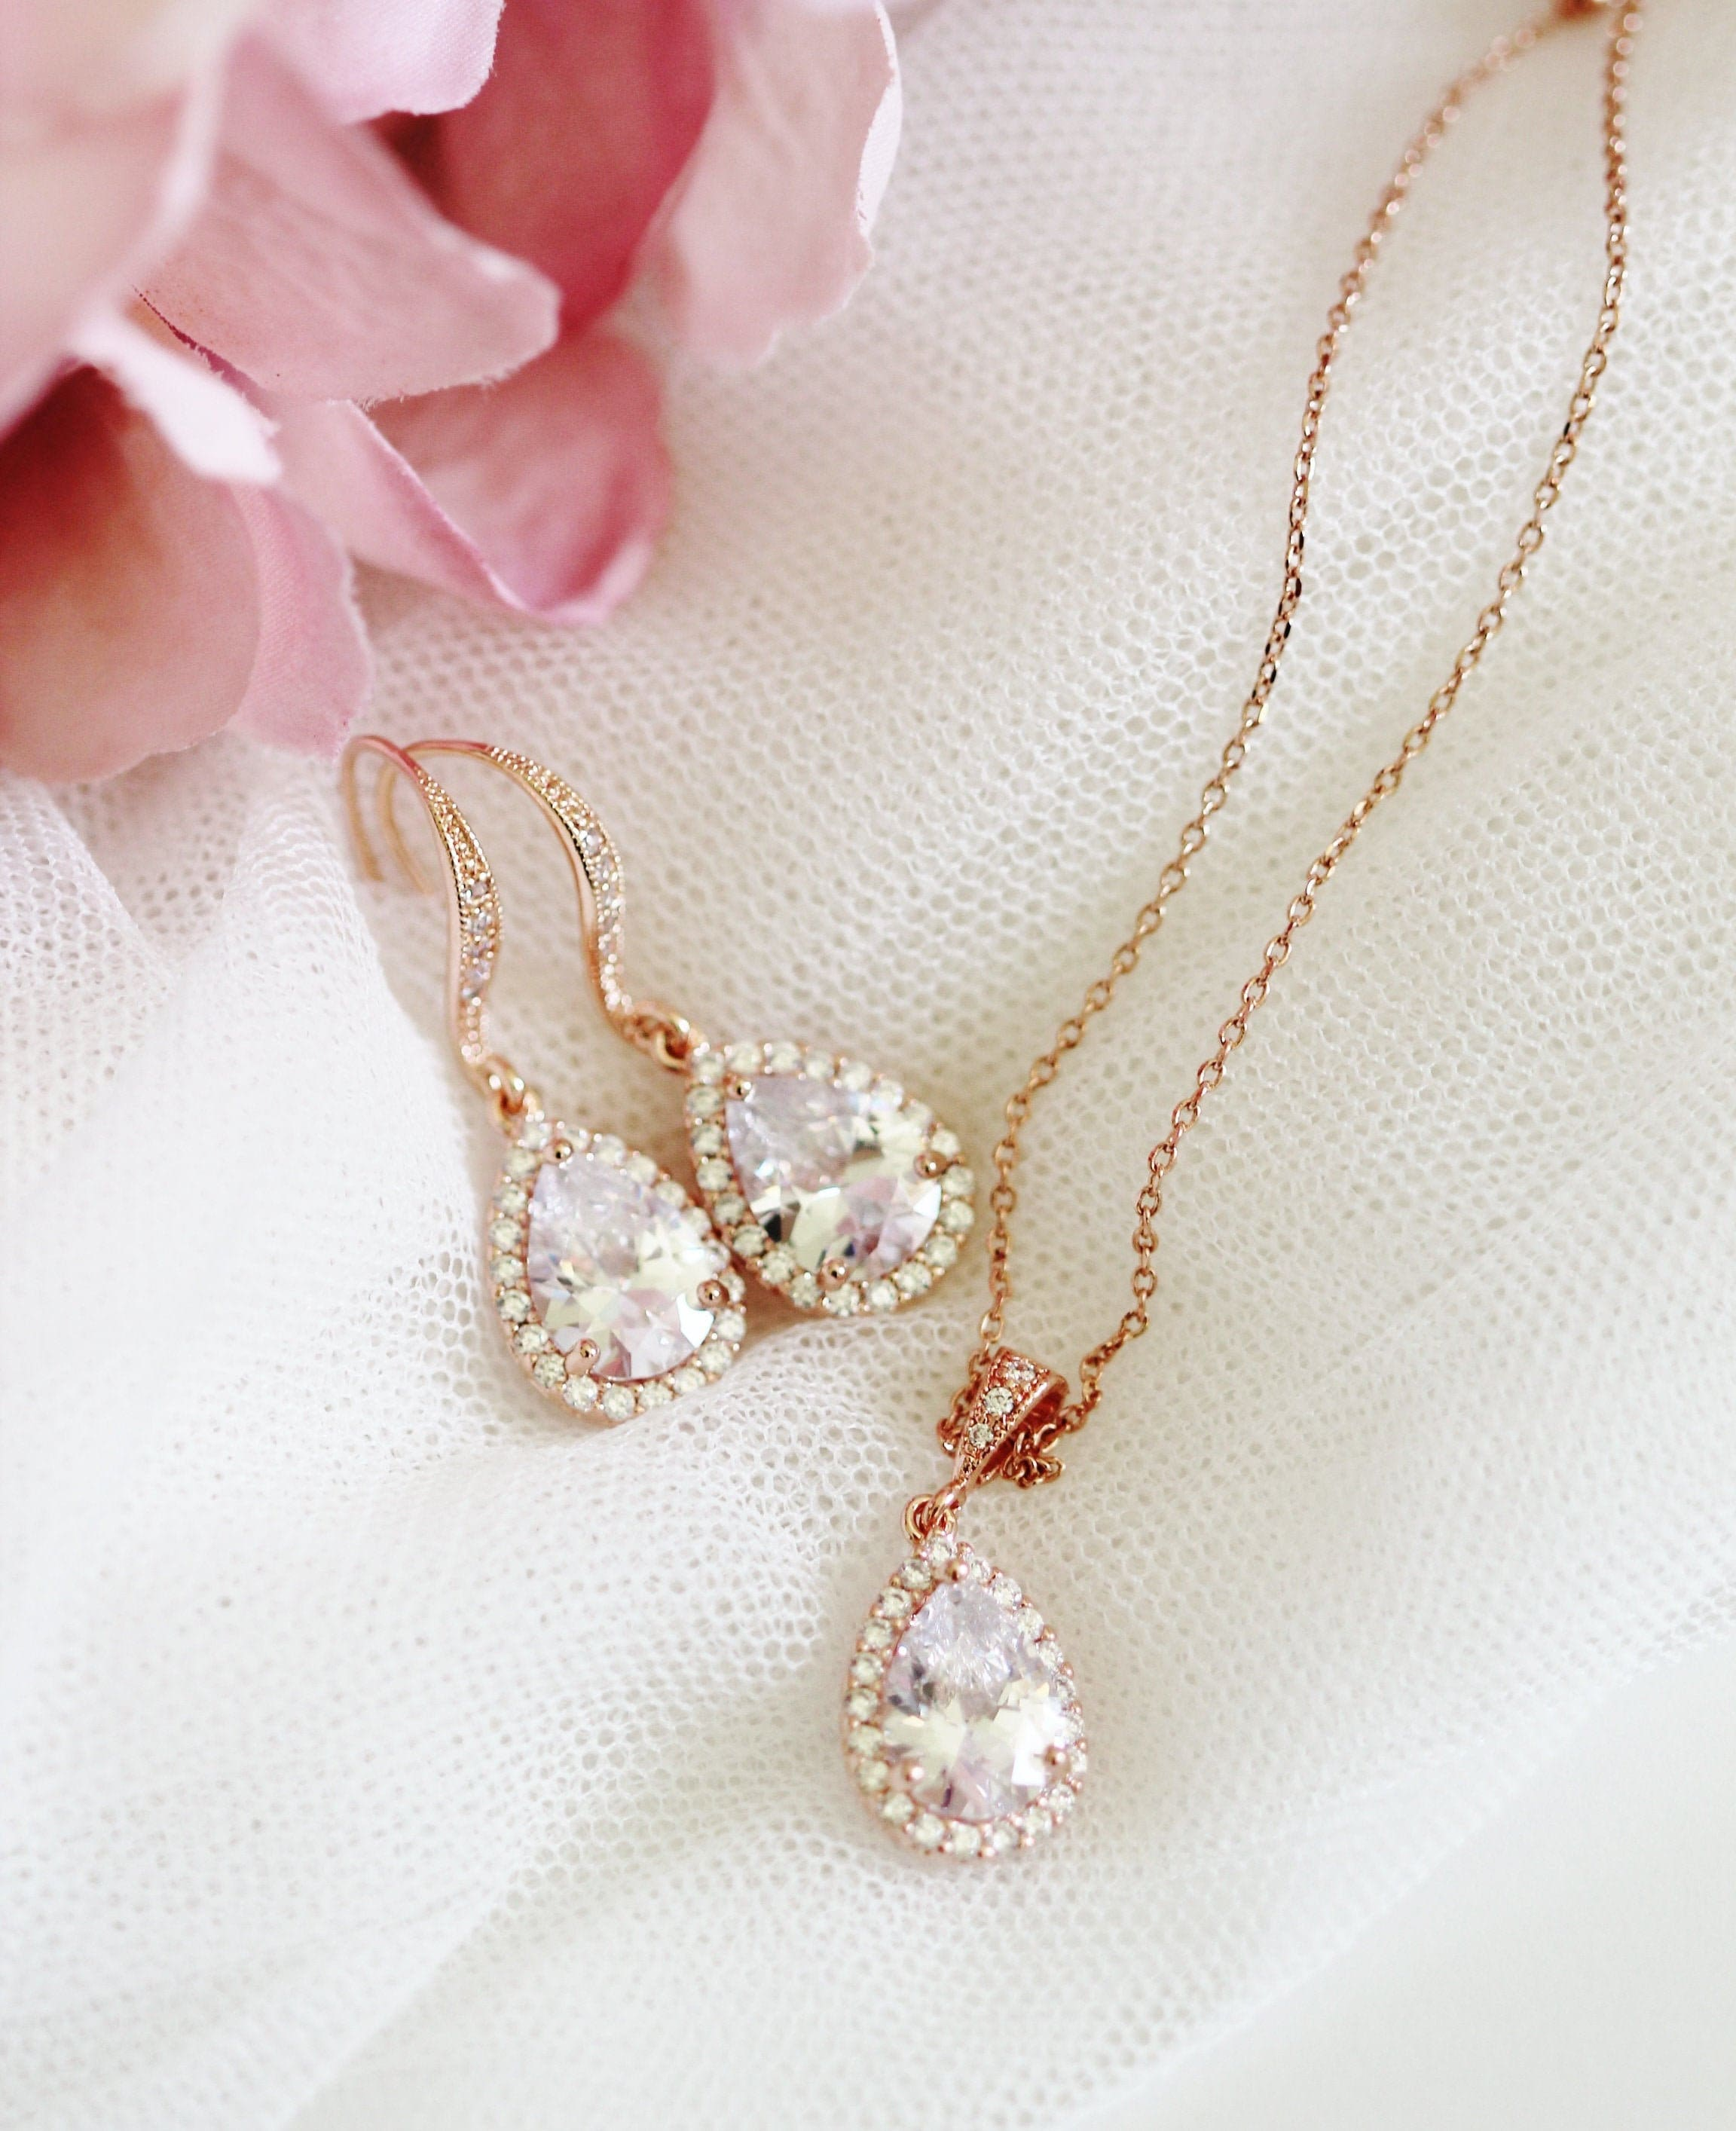 Wedding//Bridal Pretty Pink Flower Crystal Necklace Earrings Set Jewelry Gift